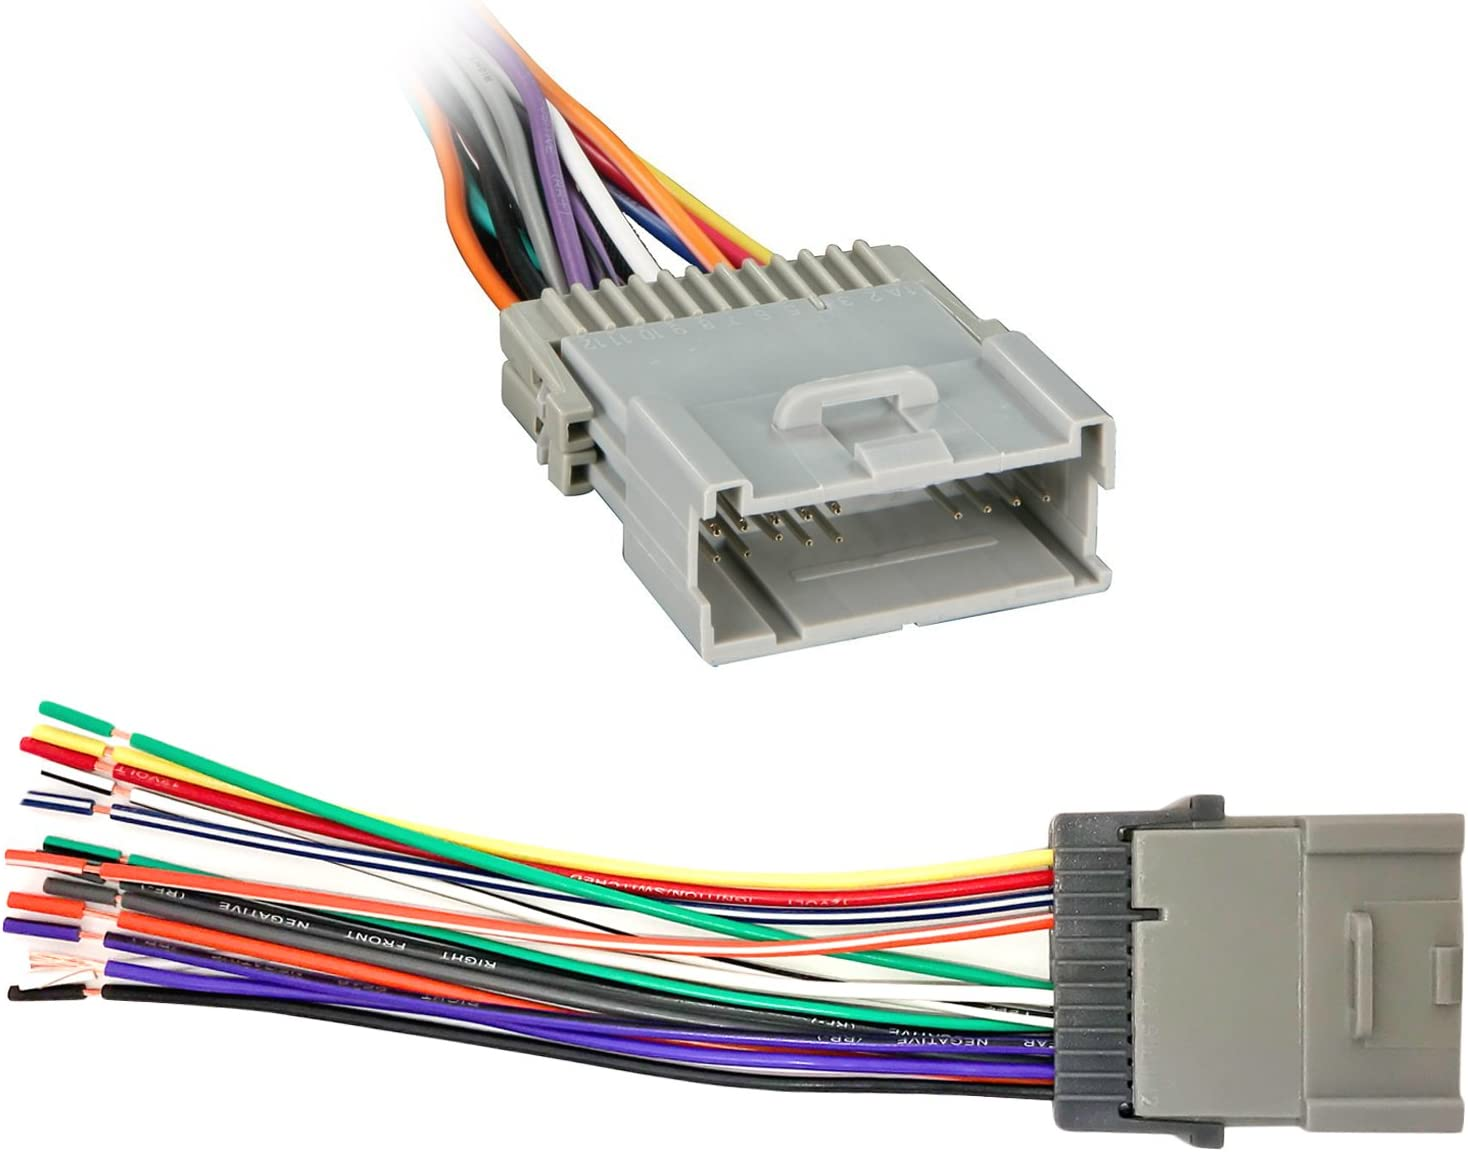 Chevrolet Pontiac /& Toyota Vehicles 2000-2008 Enrock EGMWH98-08 Wiring Harness for Connection of a Stereo for Select GM